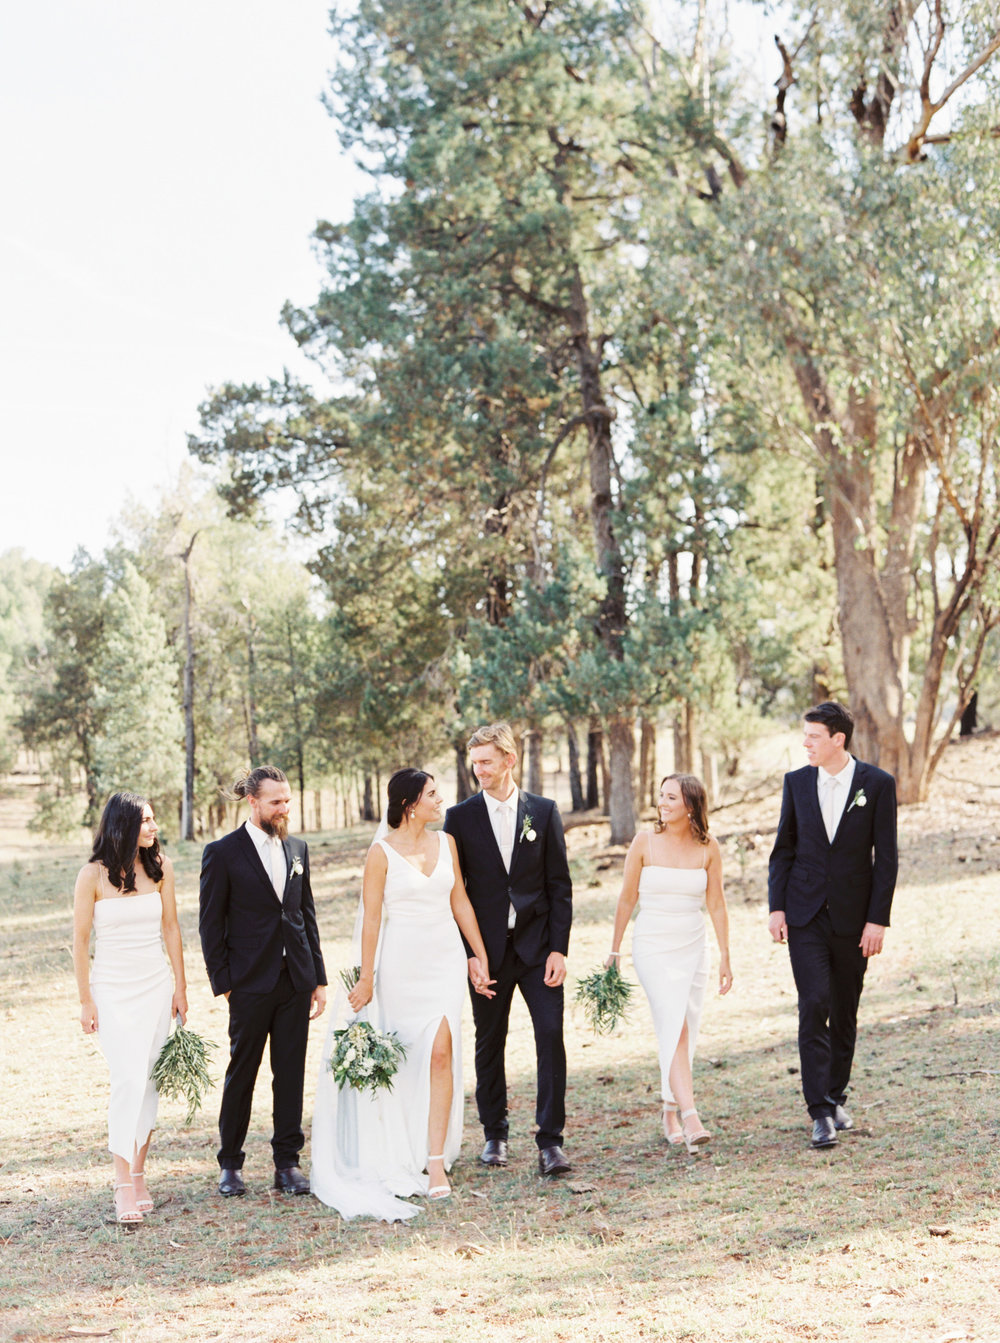 00047- Olive Tree Mediterranean Wedding in Mudgee NSW Australia Fine Art Film Wedding Lifestyle Photographer Sheri McMahon_.jpg